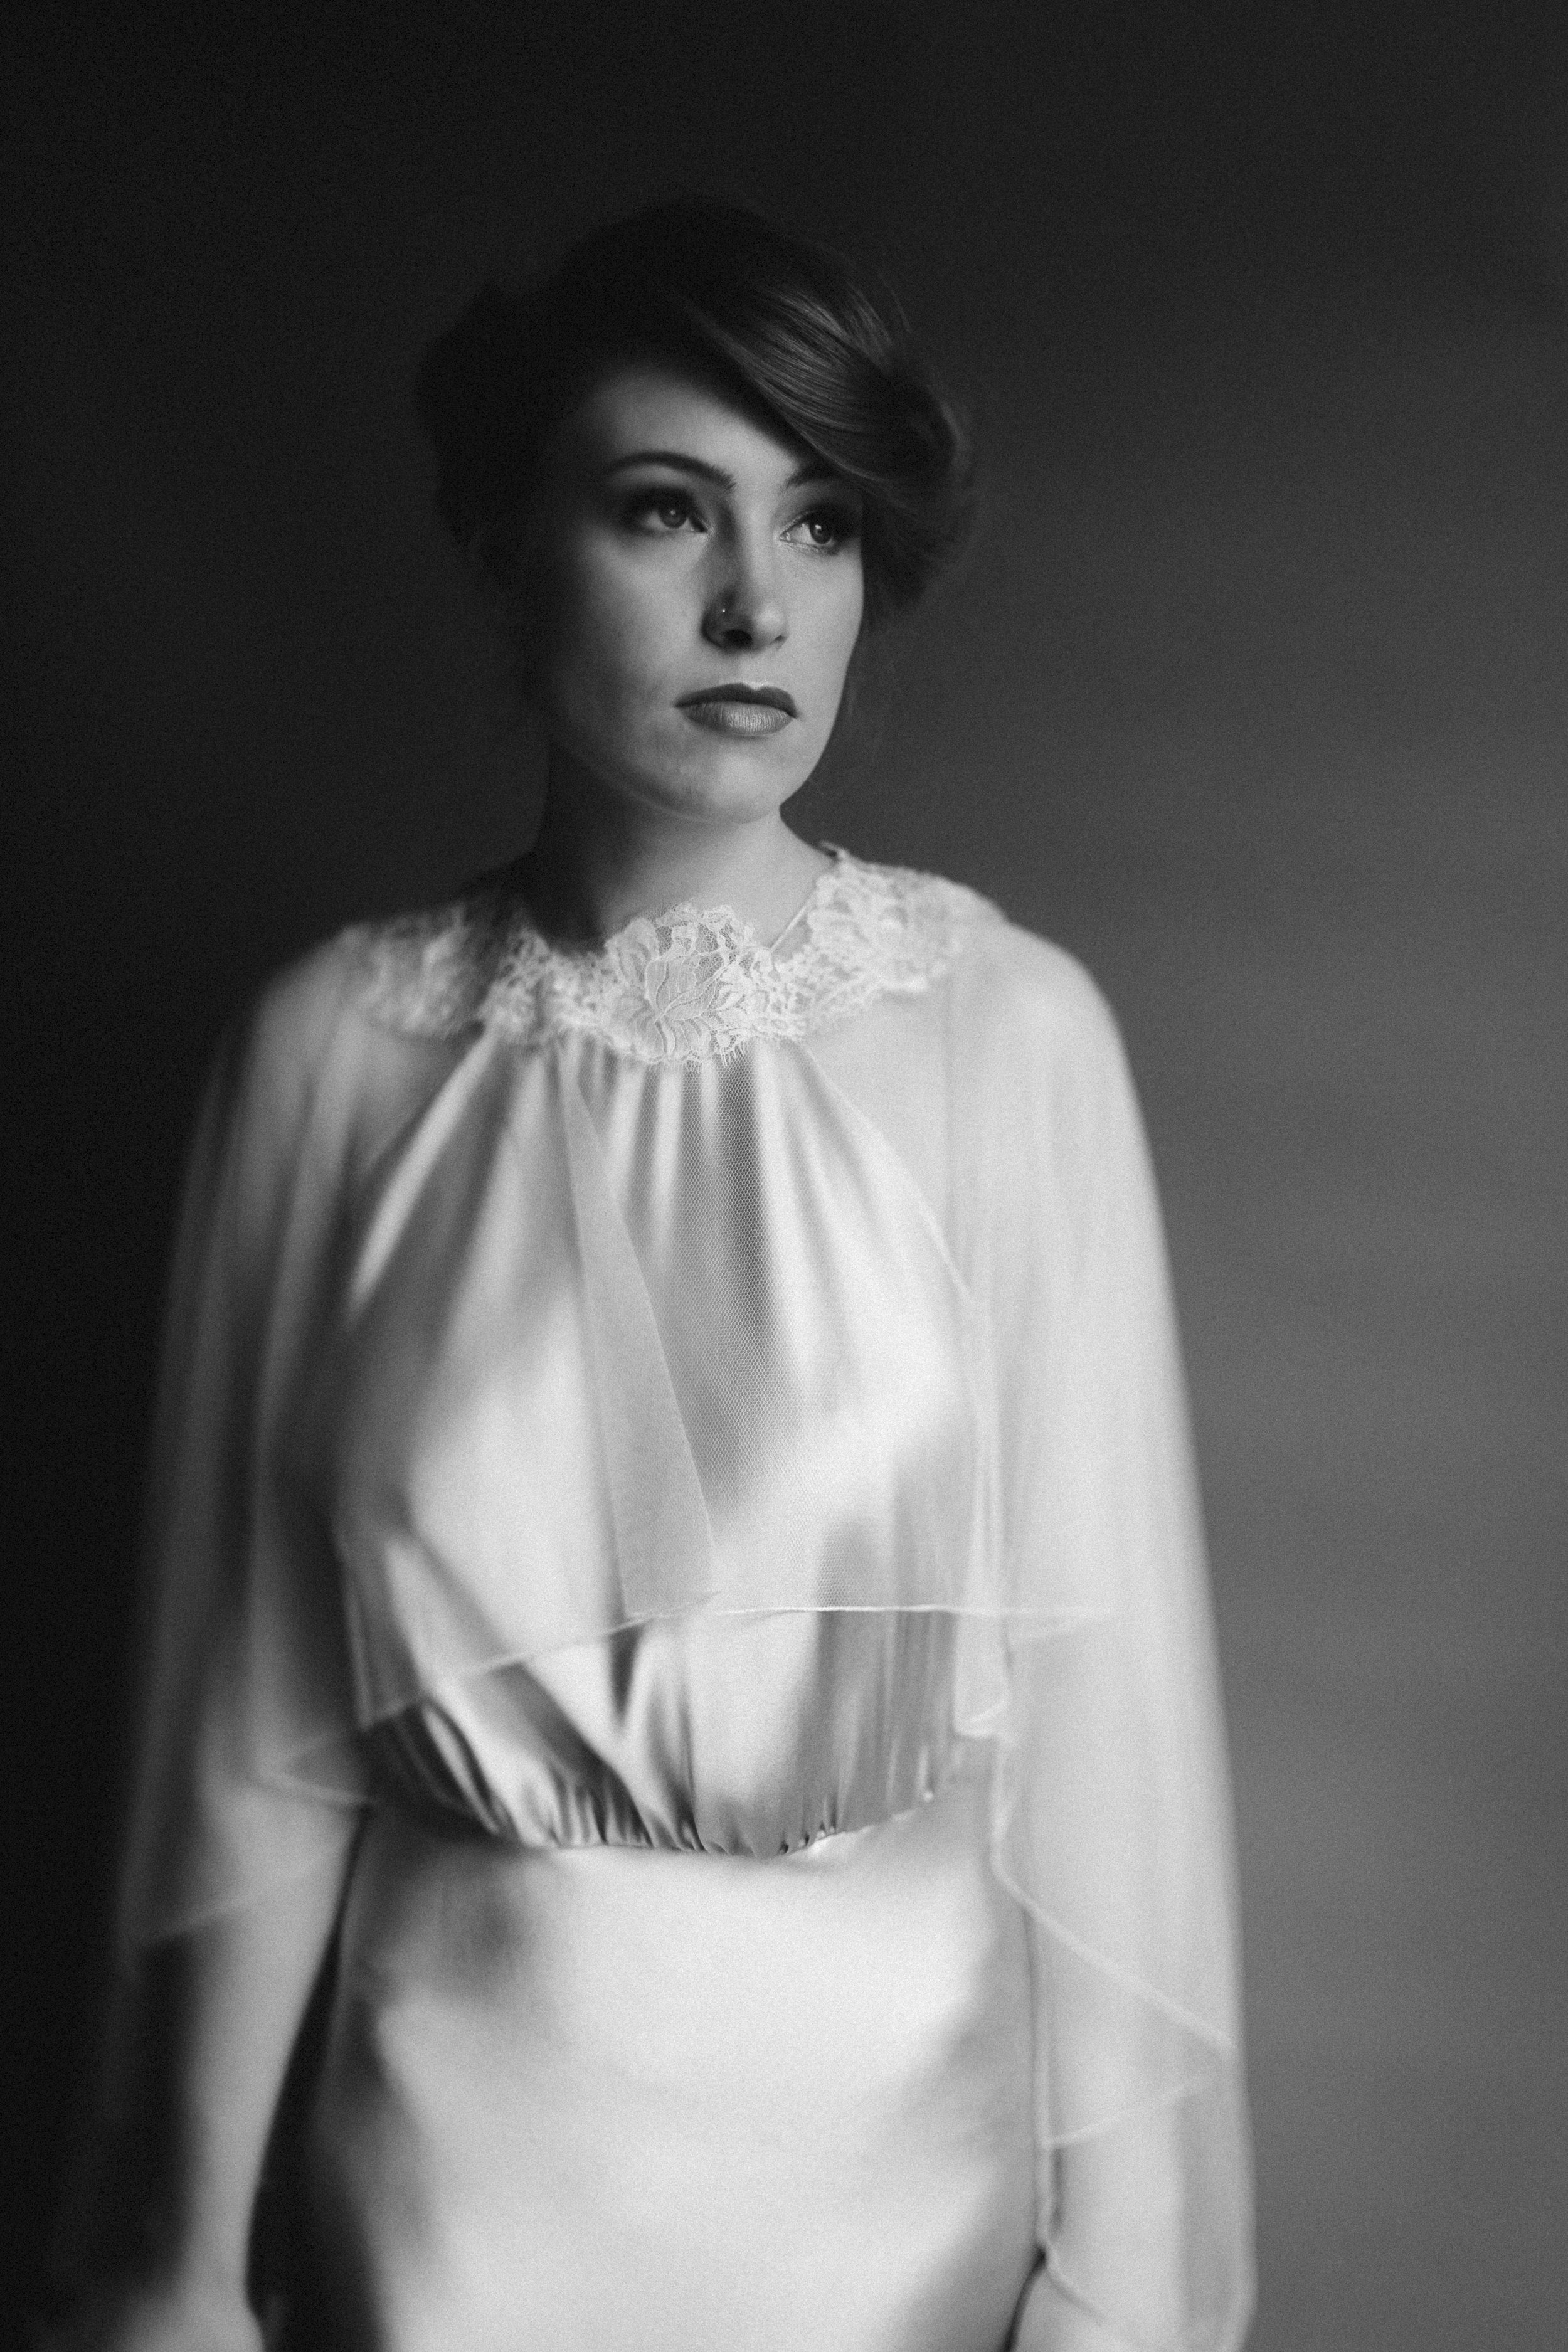 Agnes-and-bee-Kate-Beaumont-wedding-dresses-Ruth-Atkinson-5.jpg